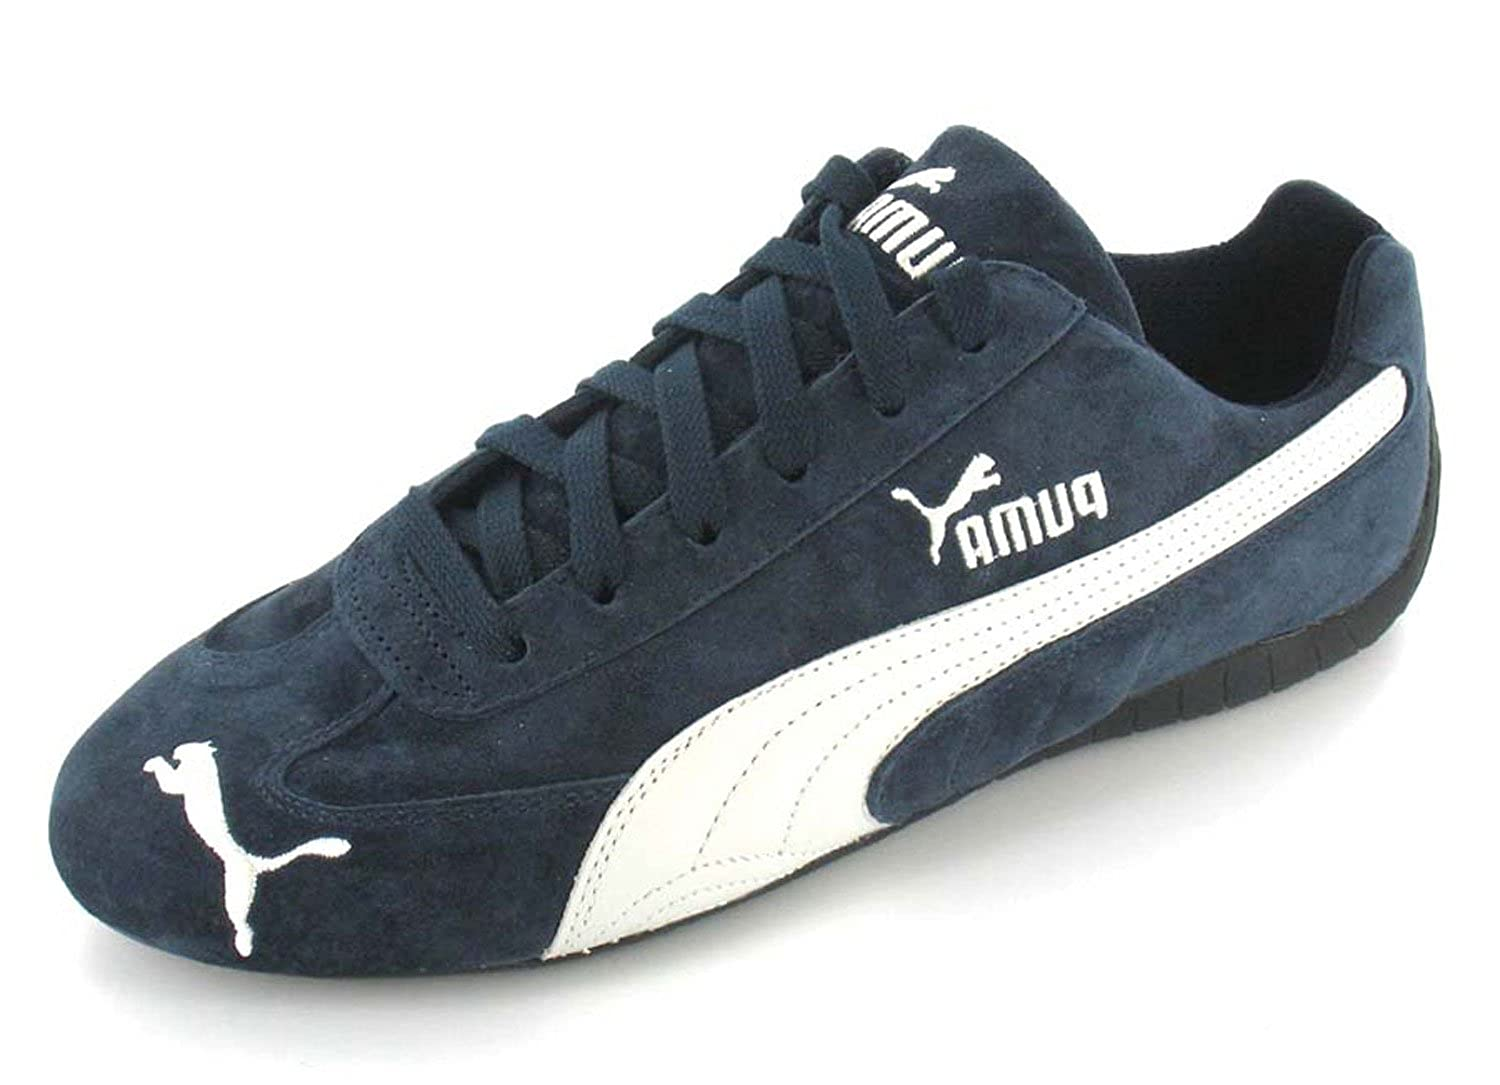 new arrivals f958e 66811 Puma Speed Cat Trainers - Navy/White - 12: Amazon.co.uk ...